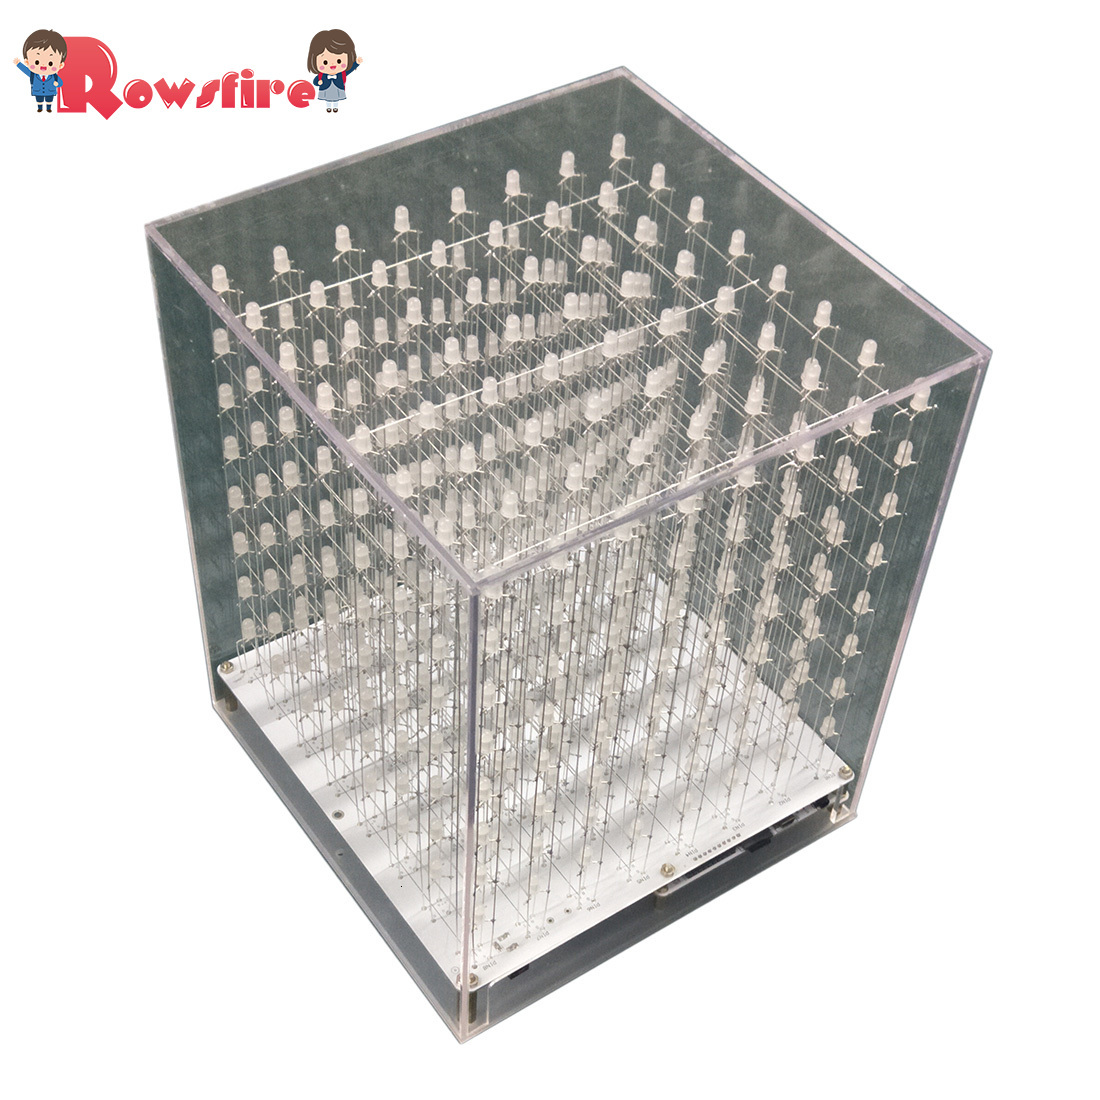 8 X 8 X 8 3D Multicolor LED Light Cube Kit Infrared Remote Control Light Cube Gift - Finished Product